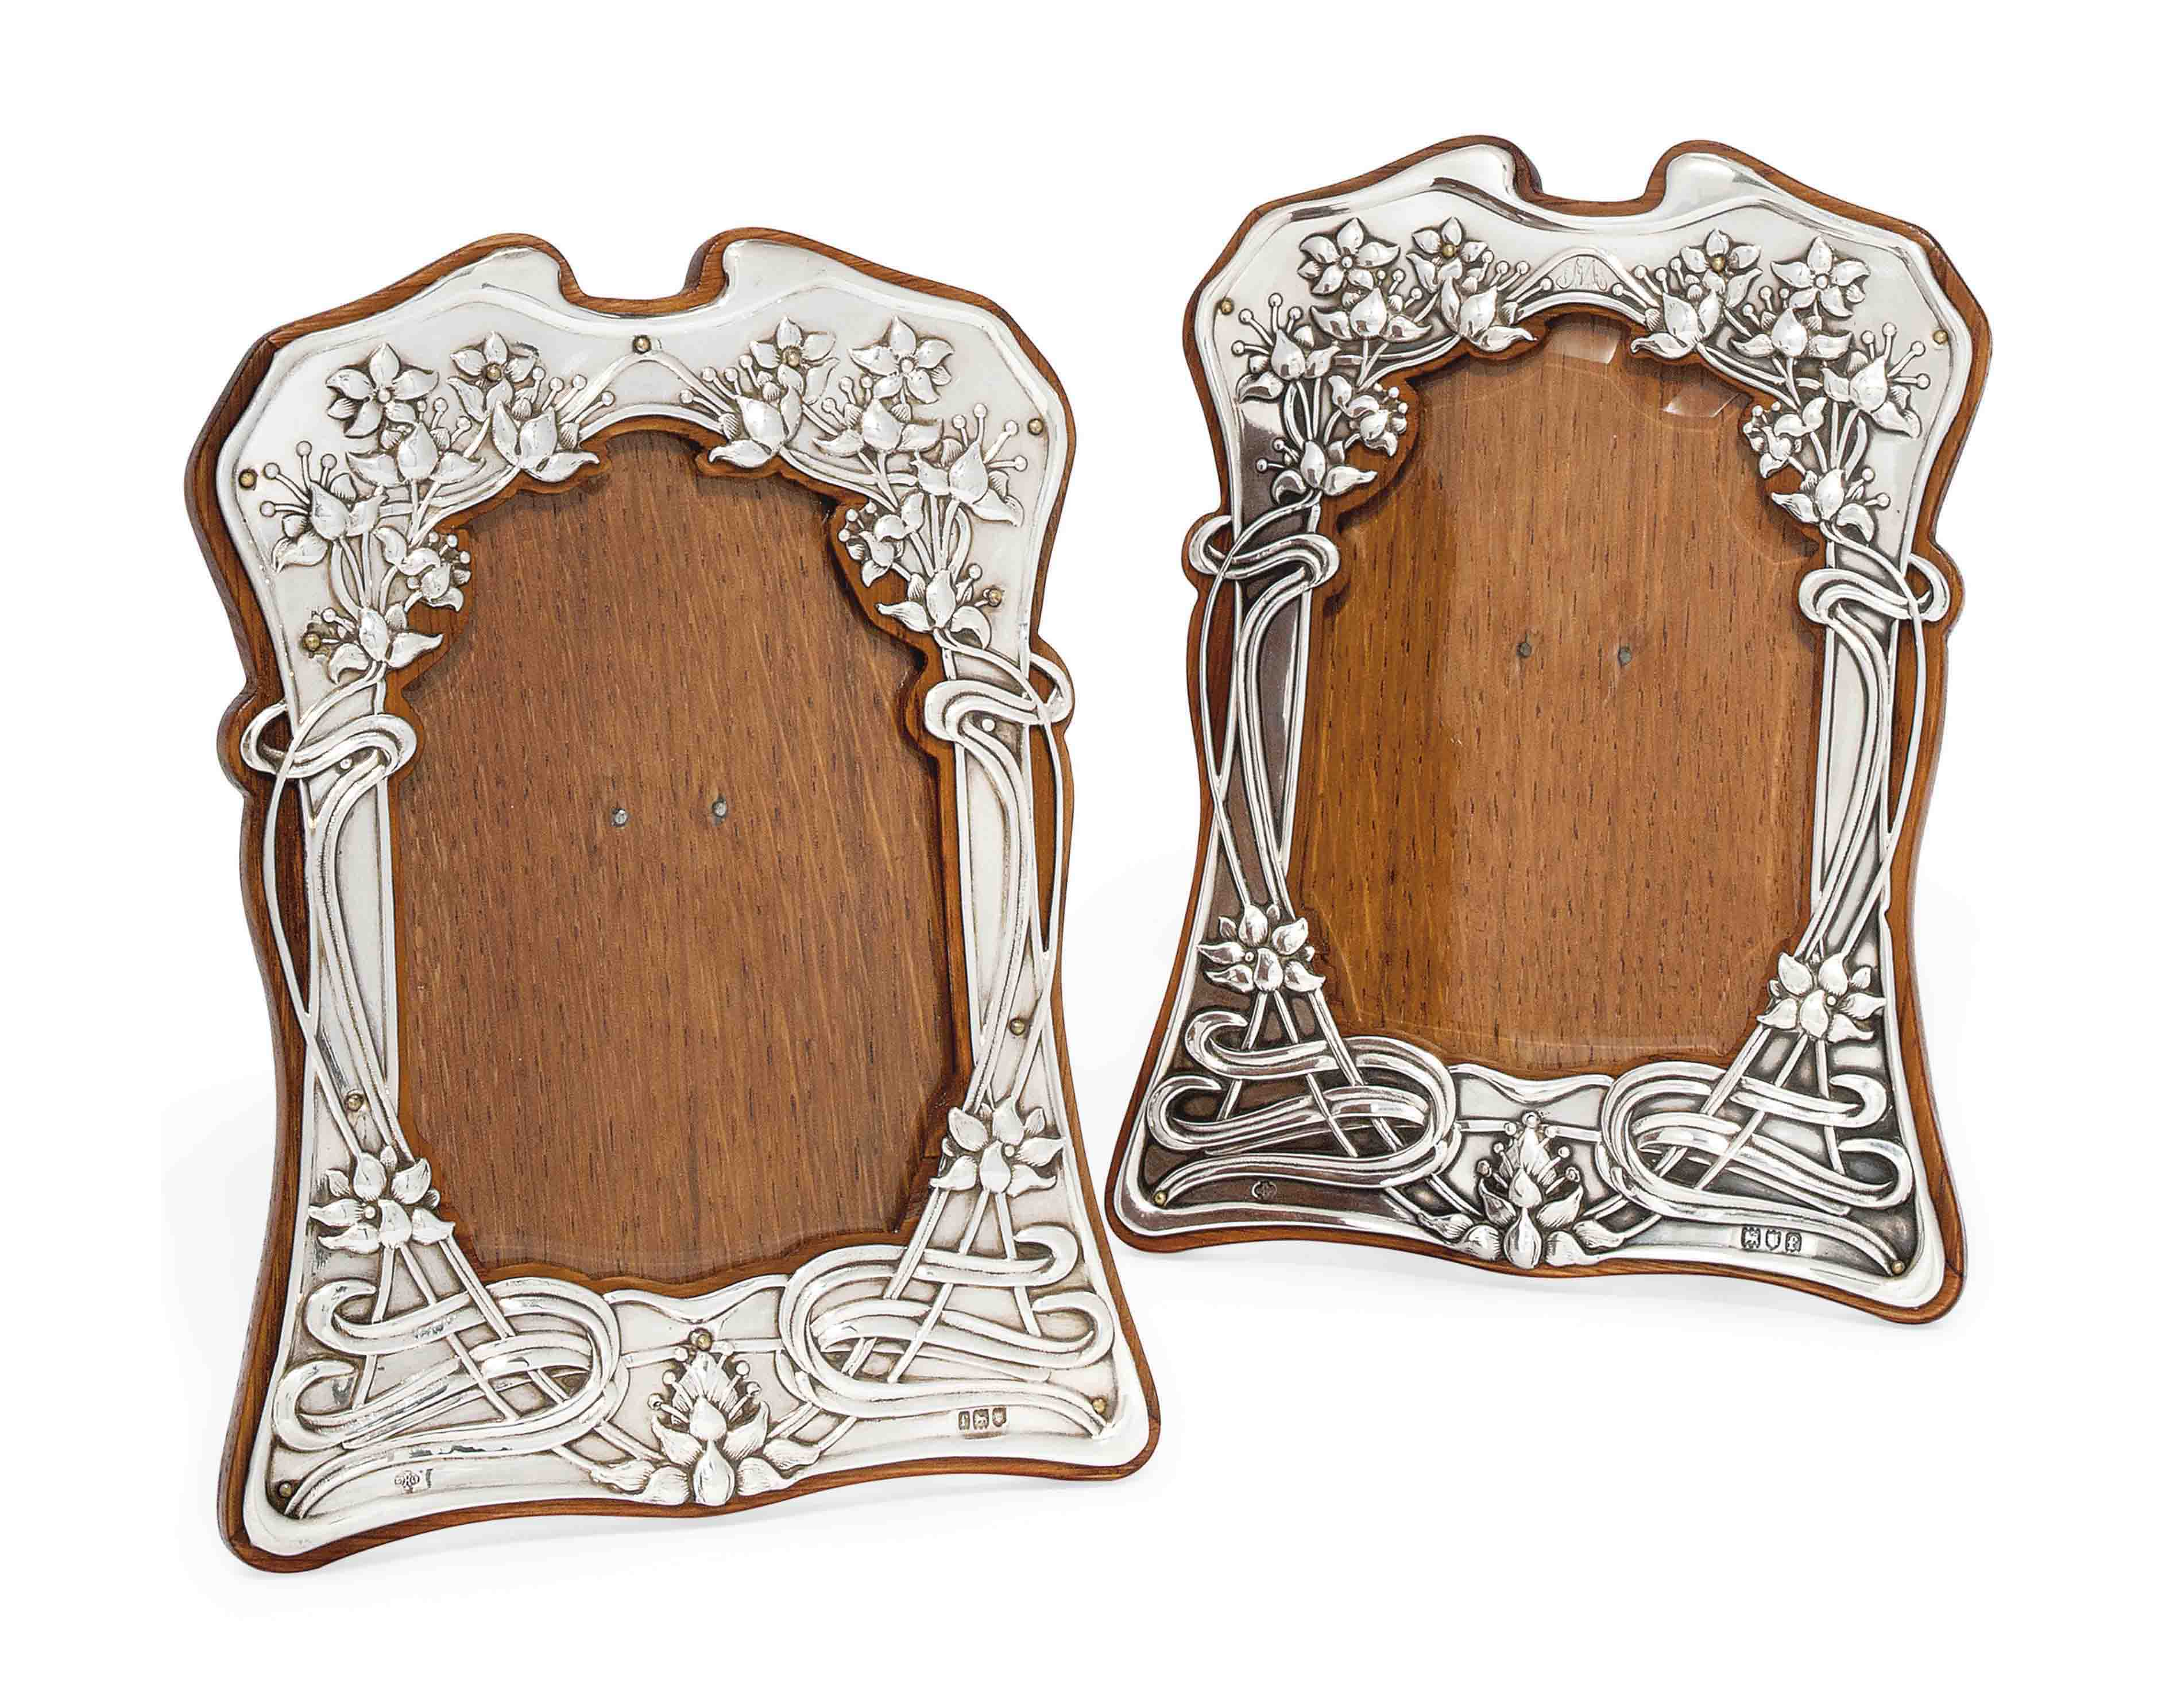 A PAIR OF EDWARDIAN SILVER ART NOUVEAU PHOTOGRAPH FRAMES